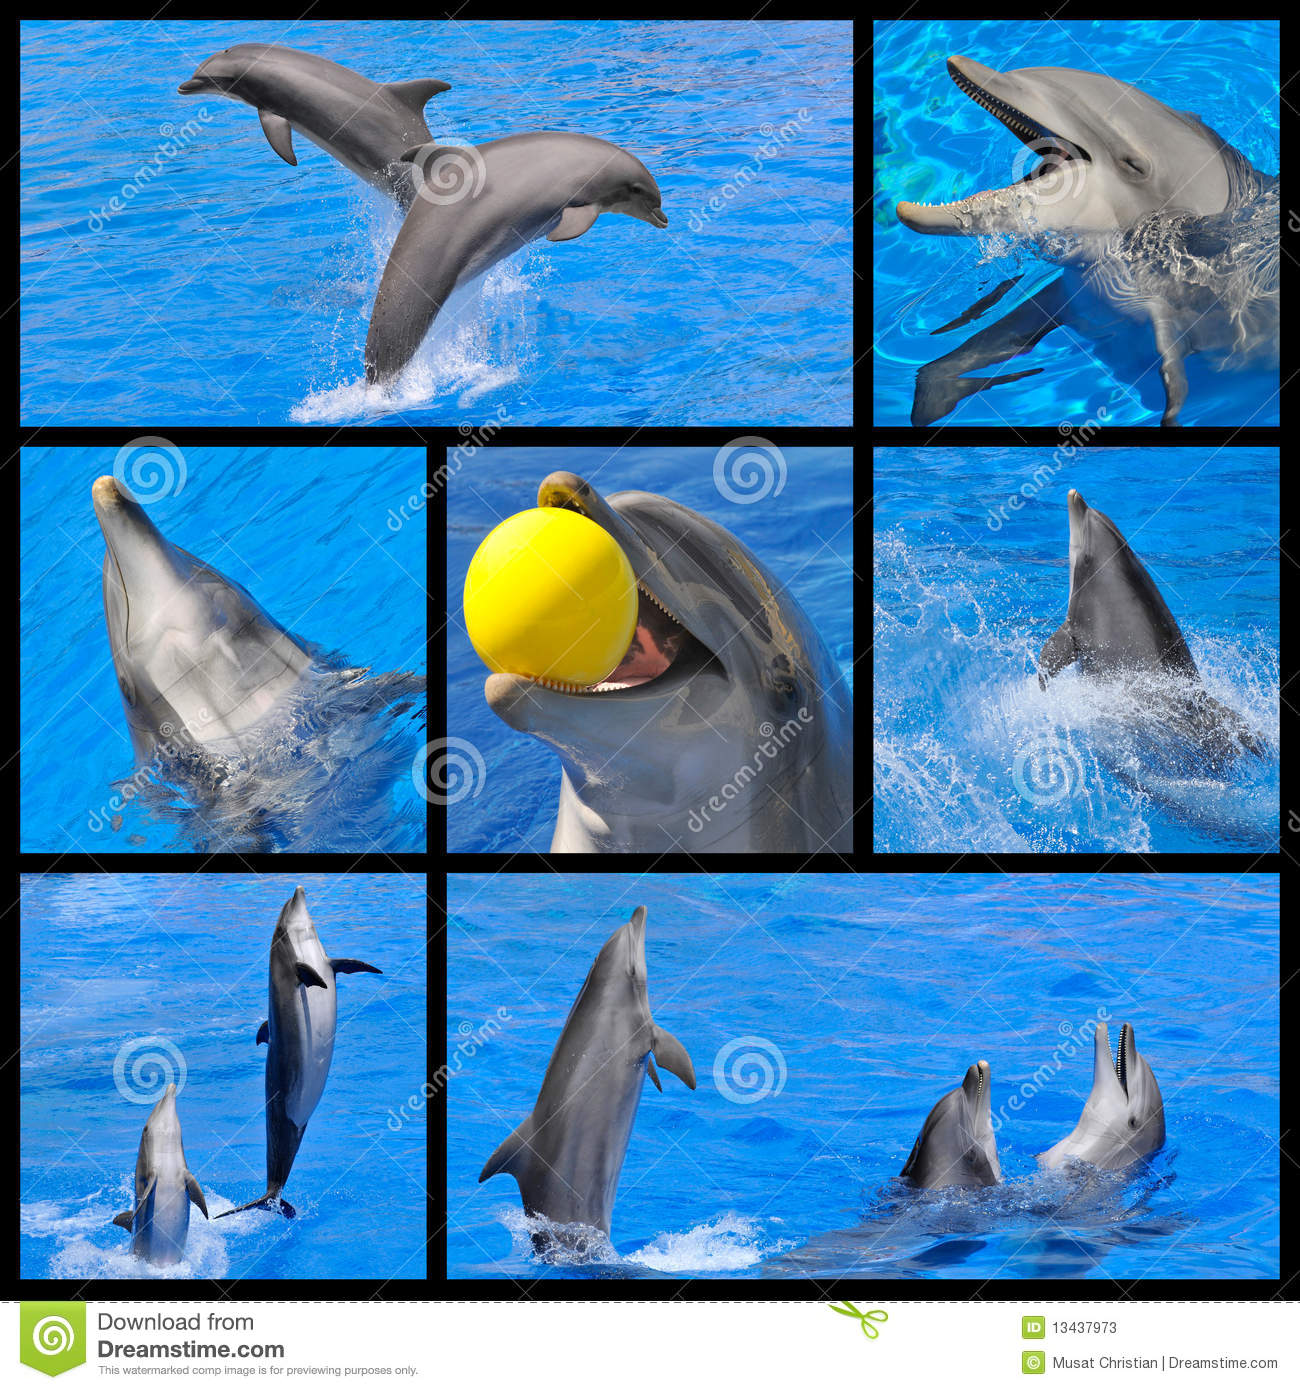 mosaic fhotos of dolphins stock photos image 13437973